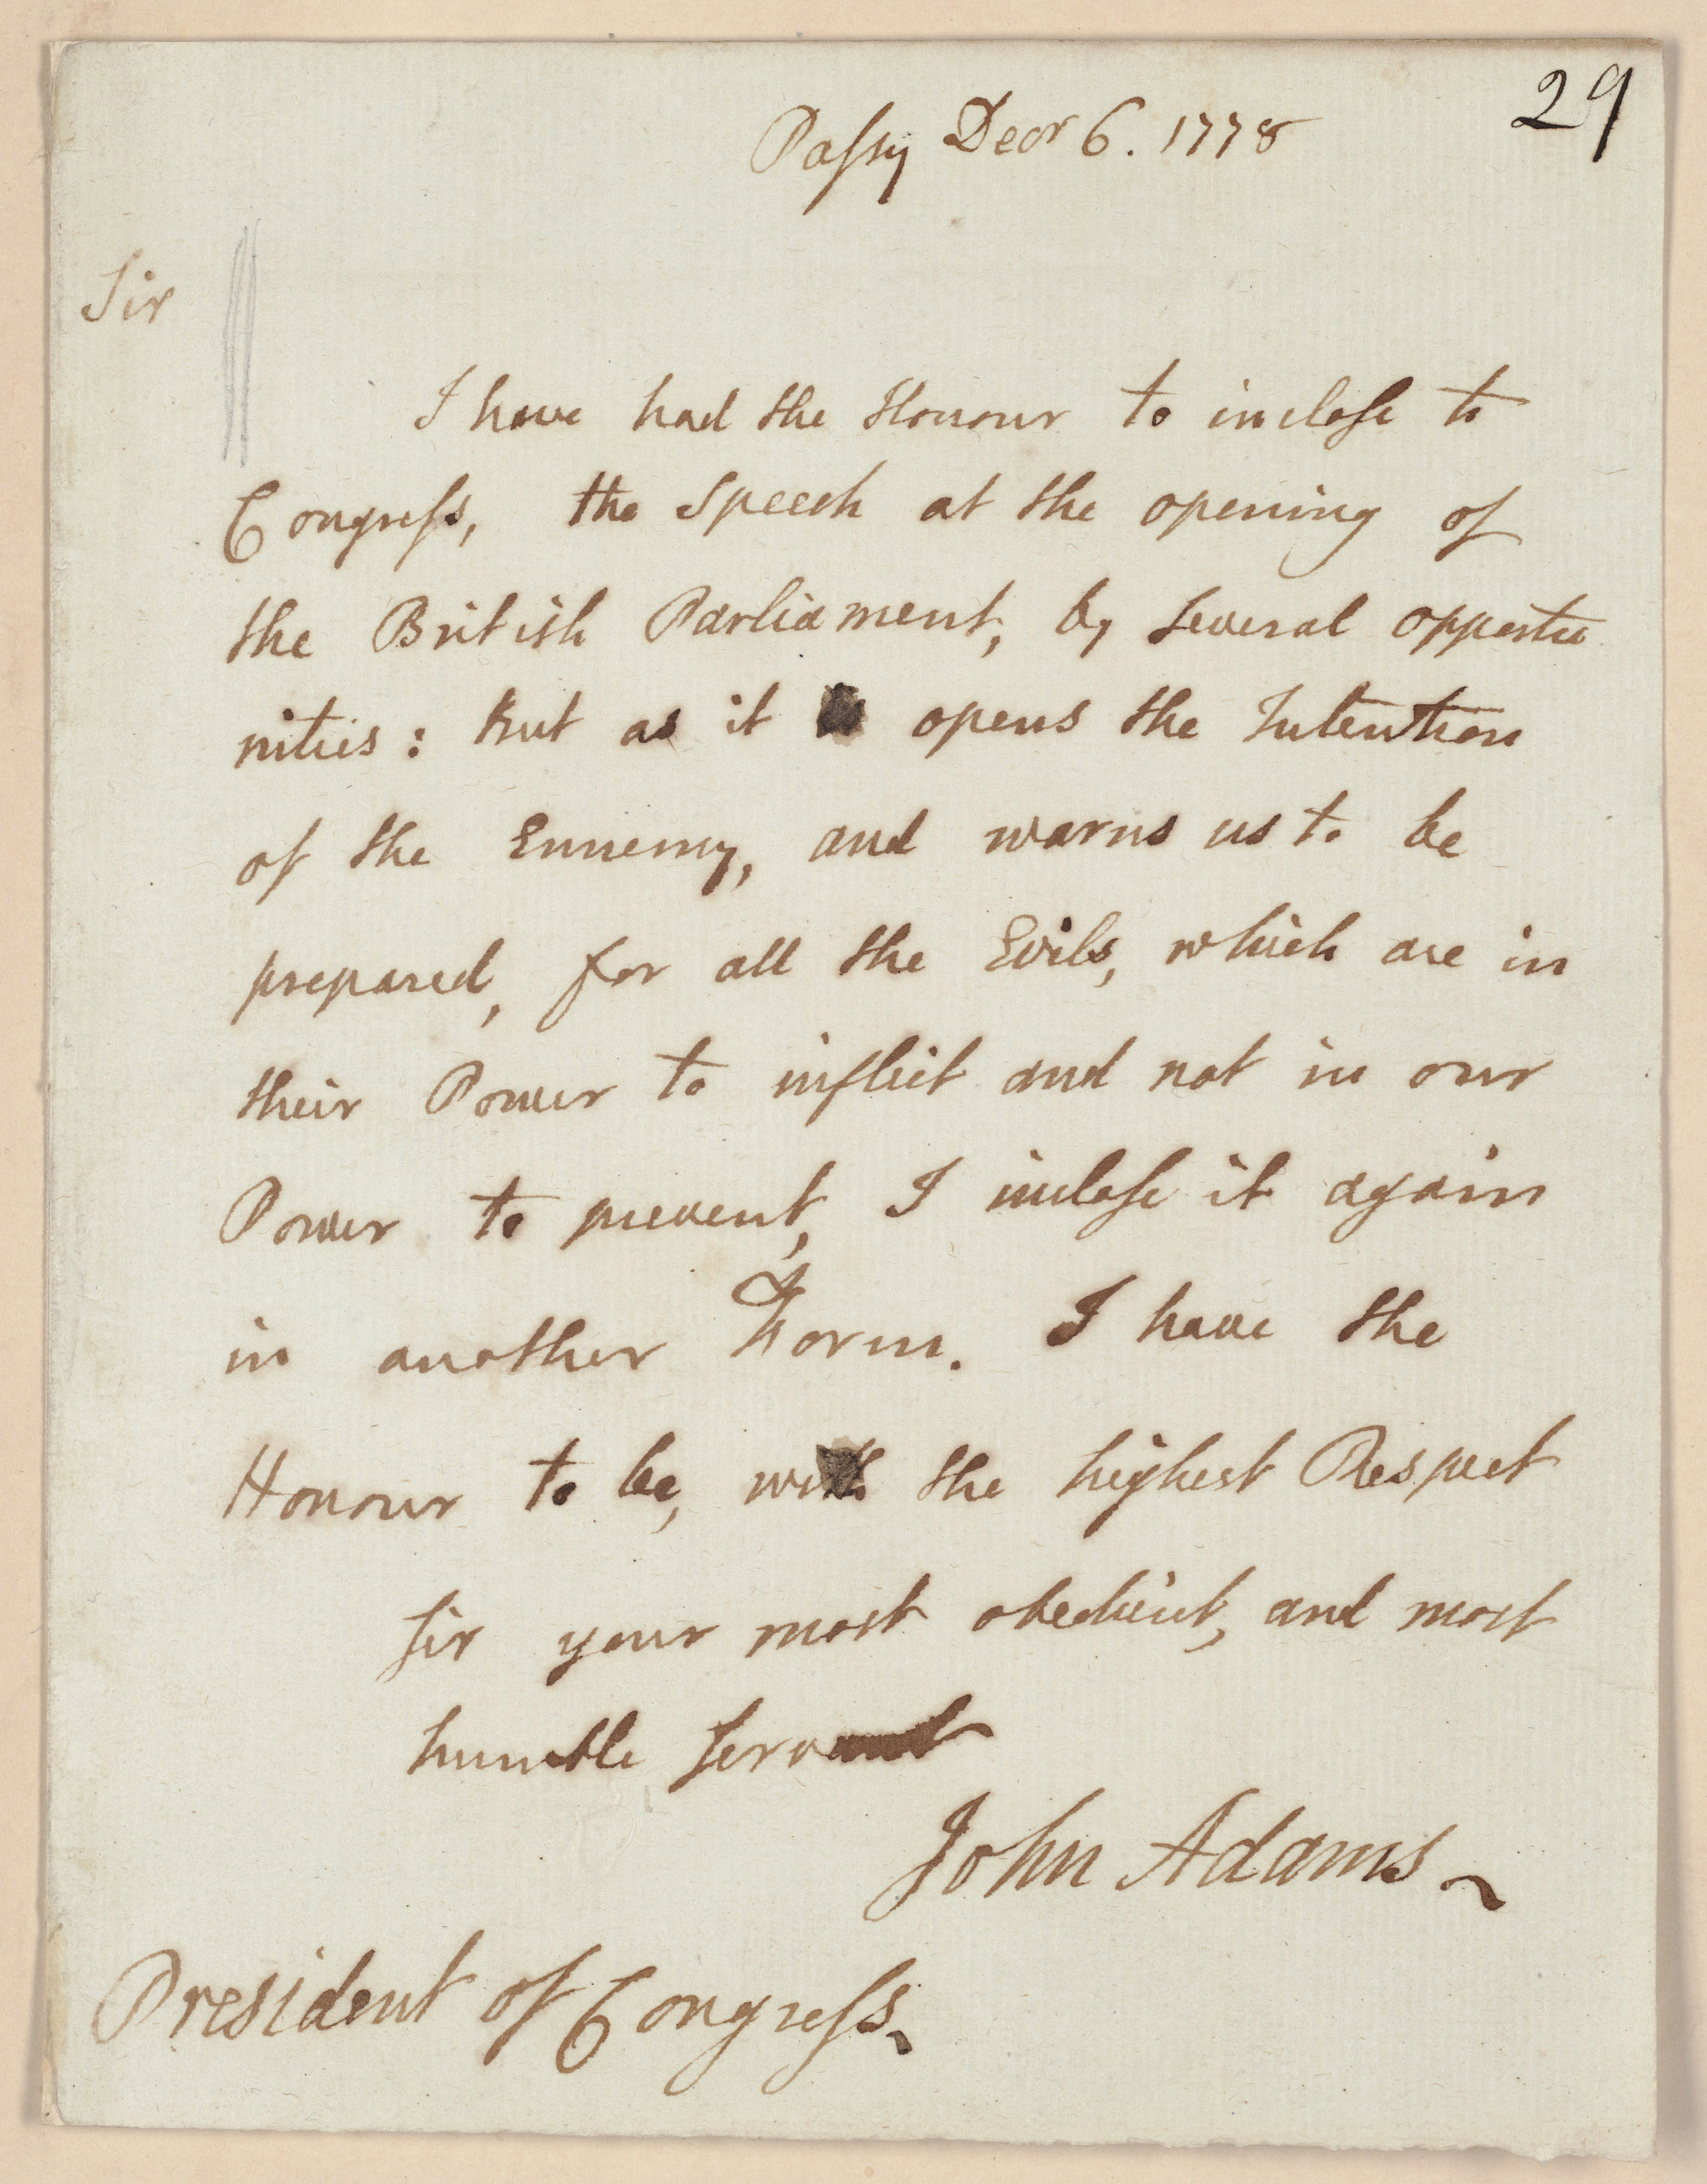 Letter from John Adams to the President of Congress